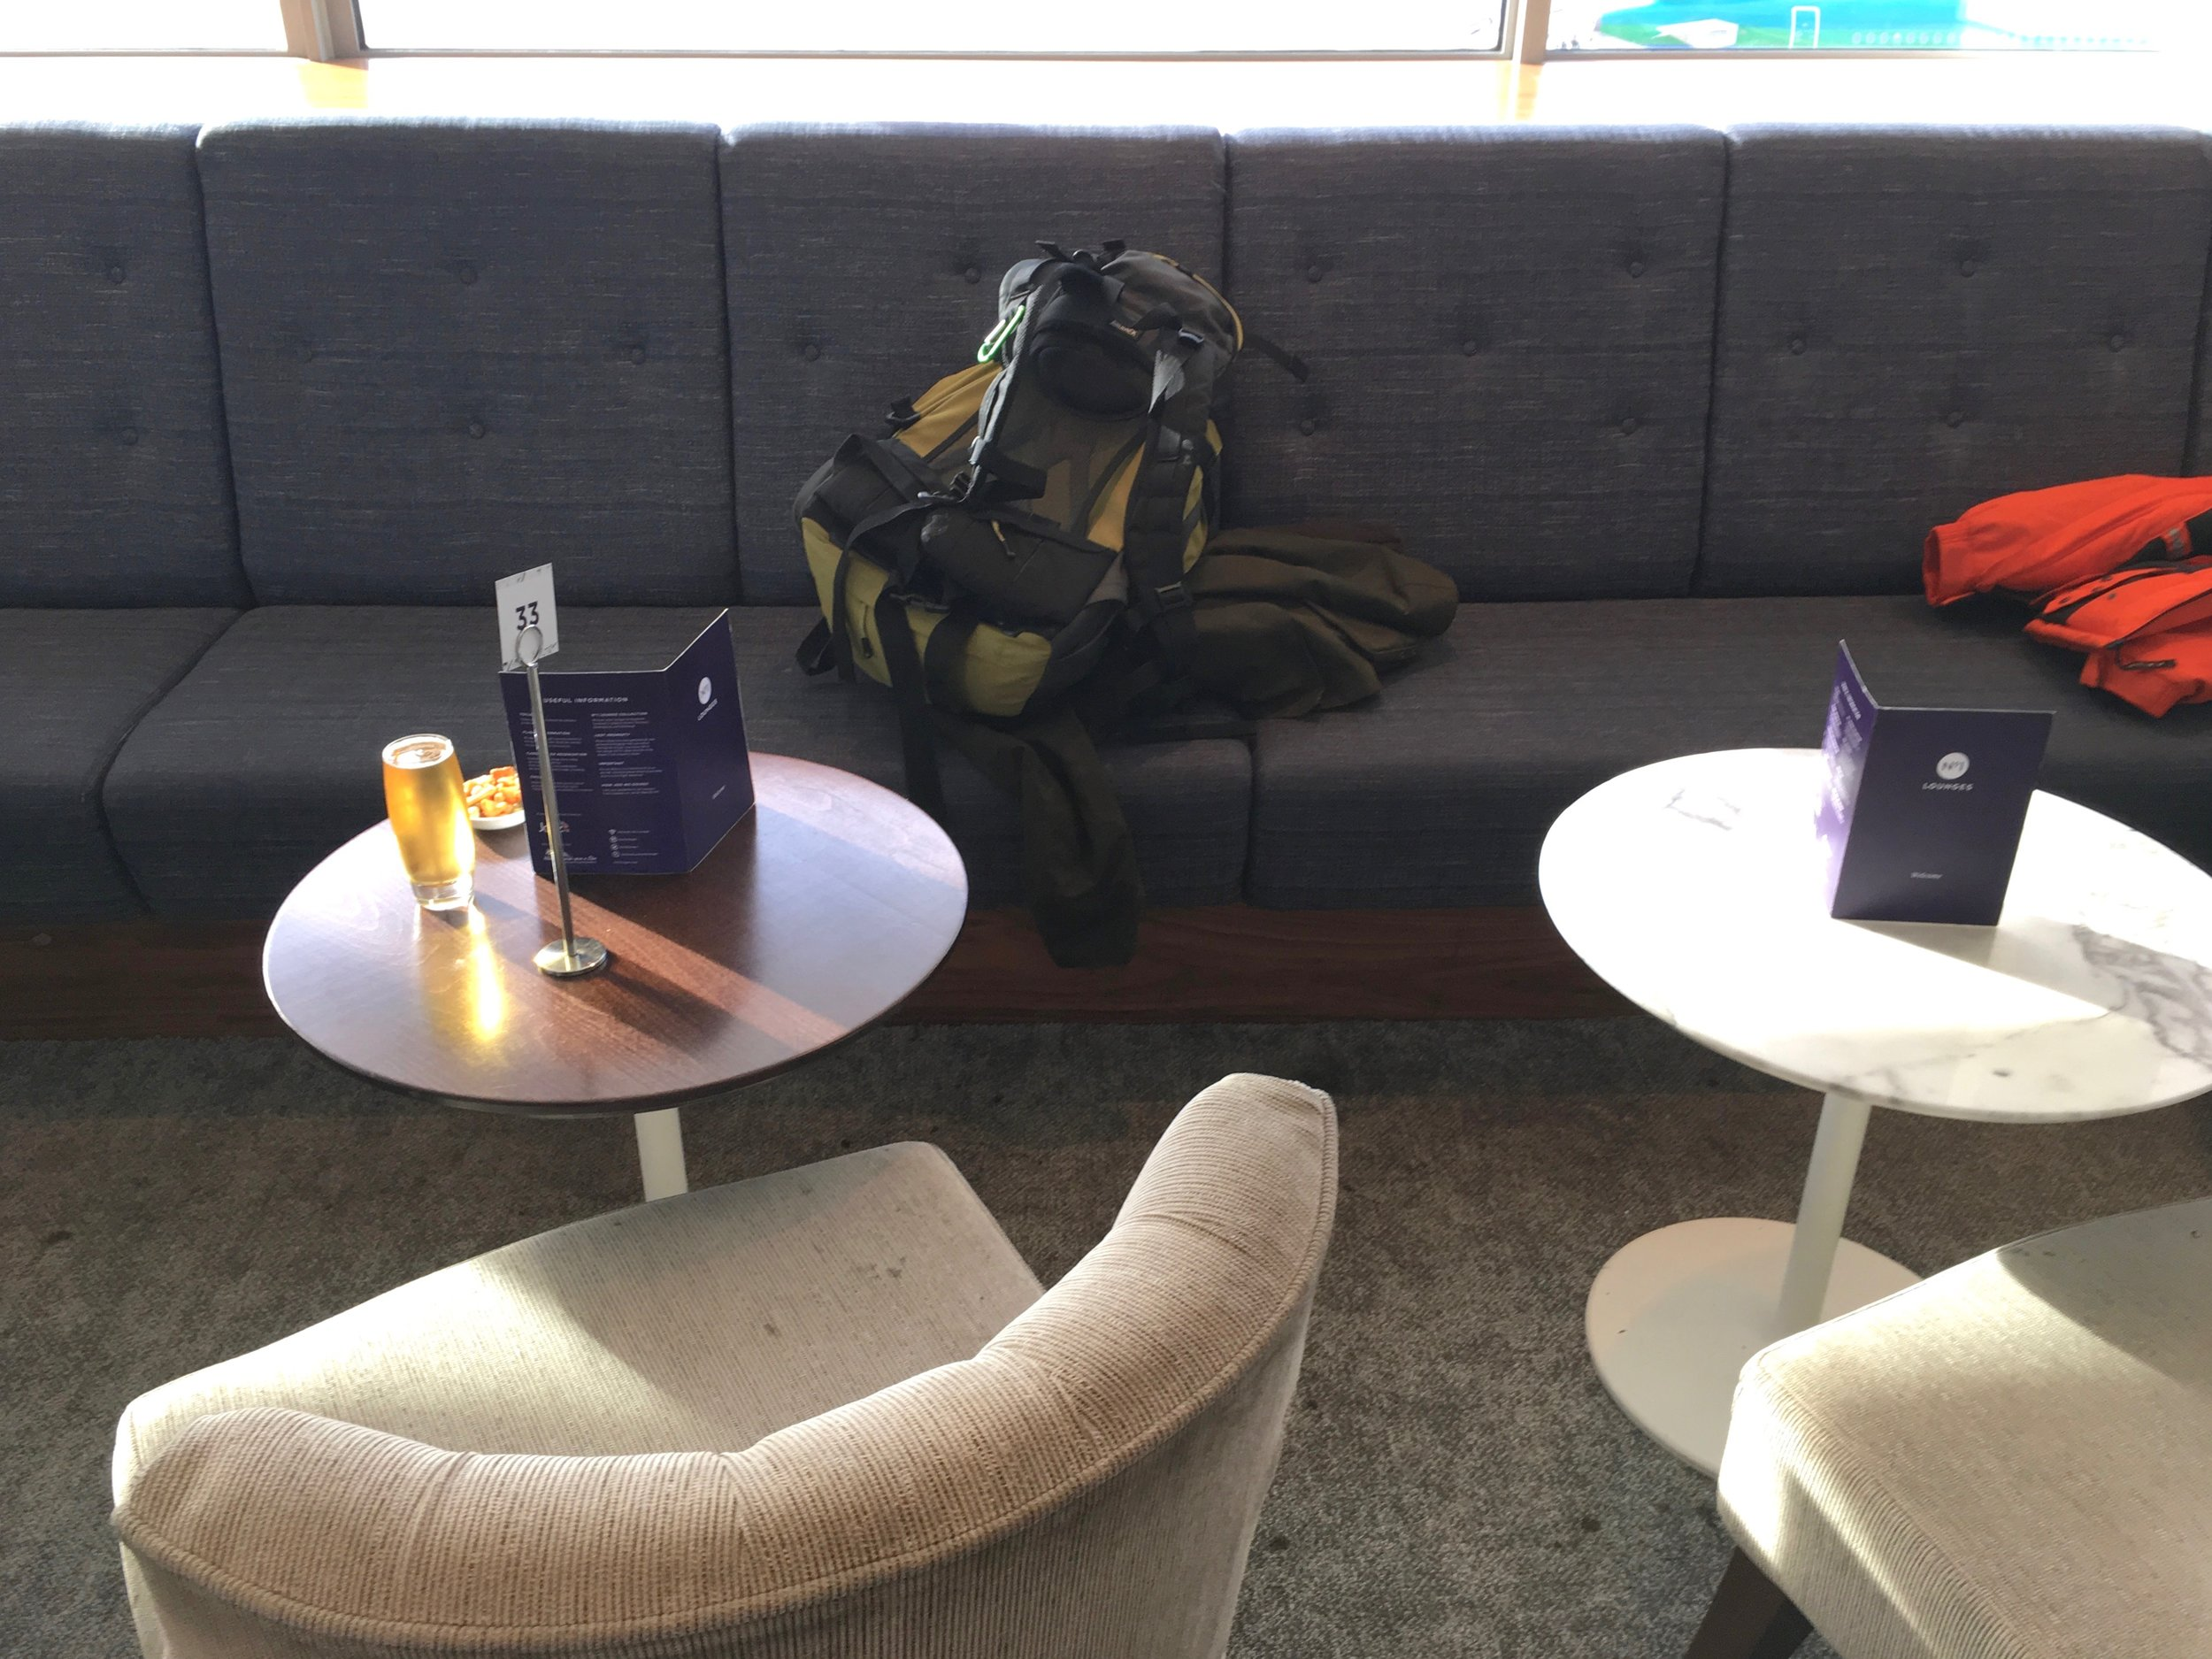 Plenty of seating for me, myself and my backpack